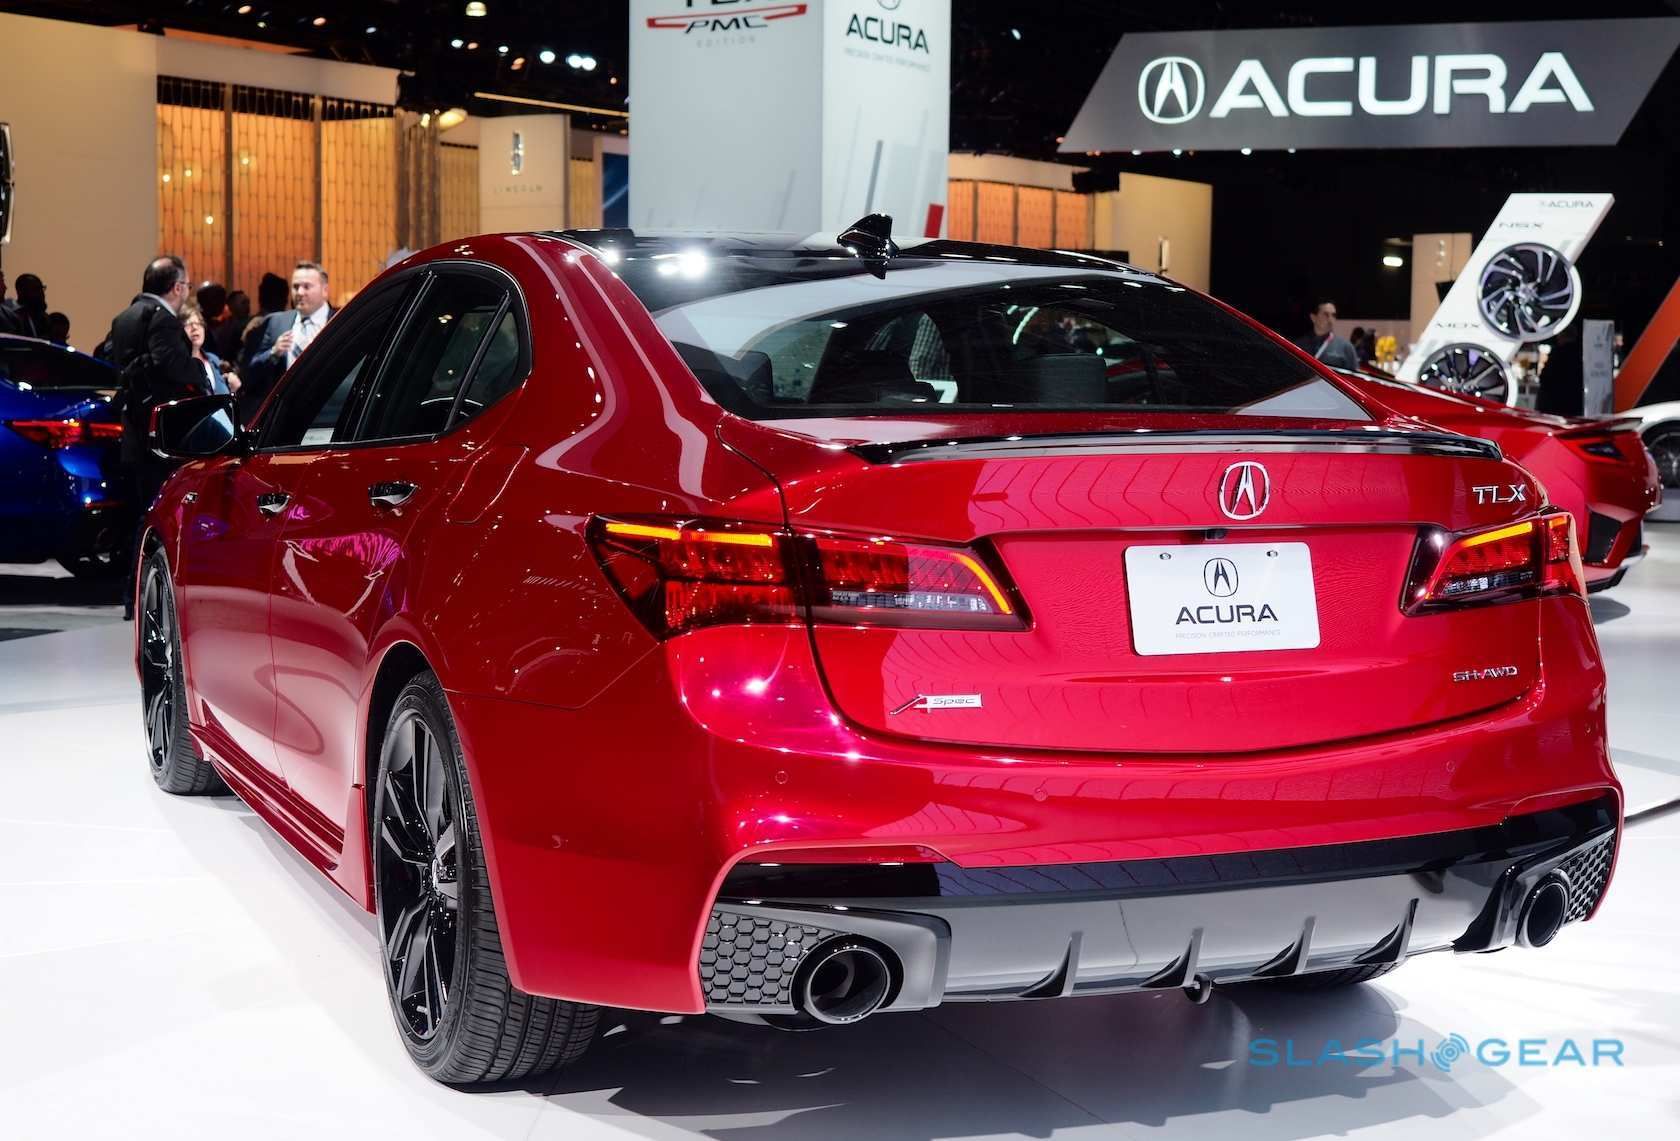 56 All New 2020 Acura Tlx Pmc Edition Specs Research New with 2020 Acura Tlx Pmc Edition Specs